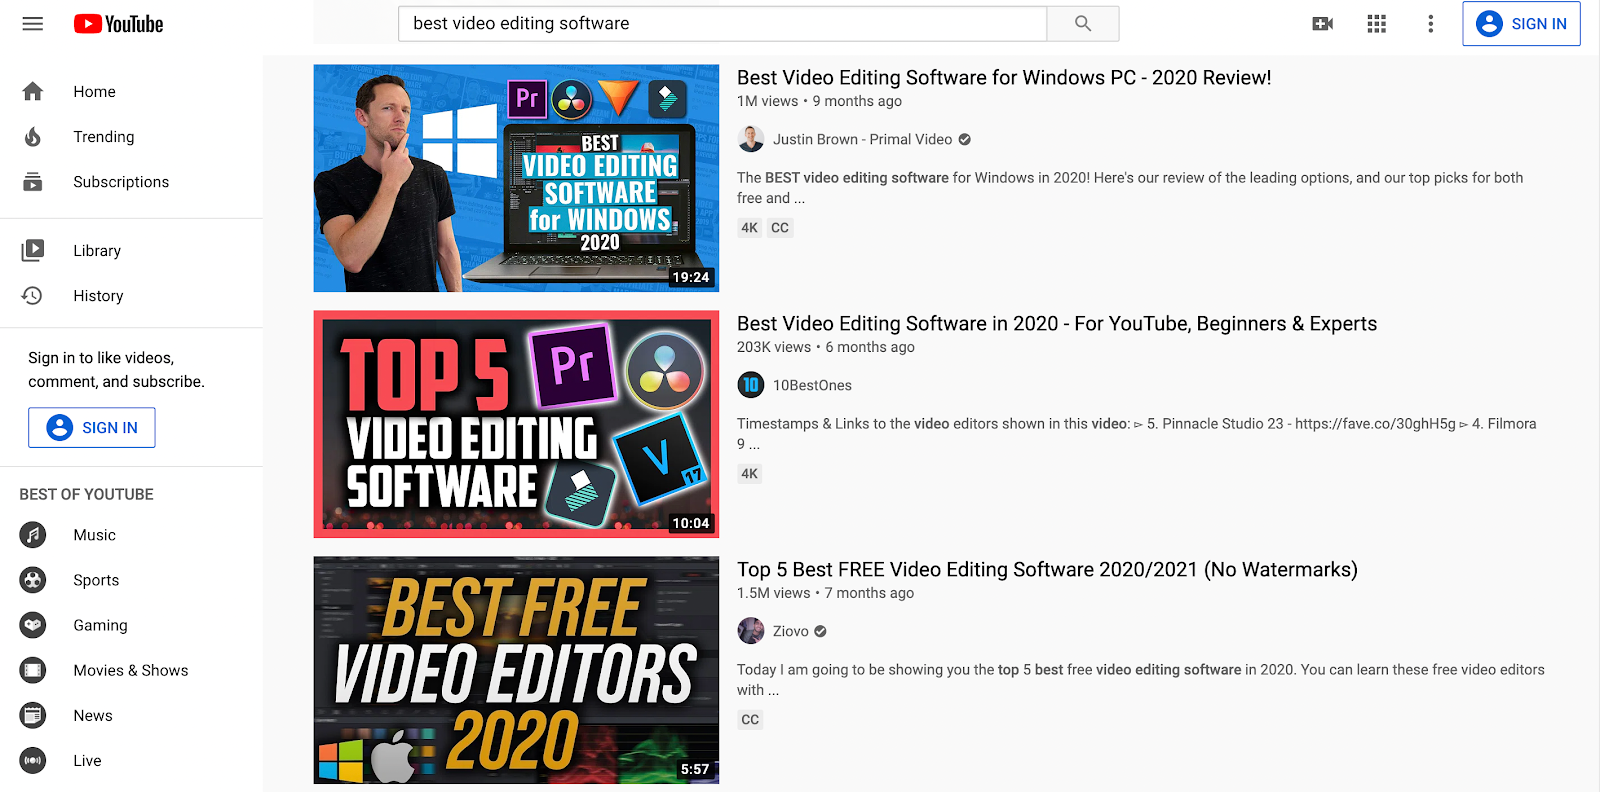 YouTube best video editing software screenshot